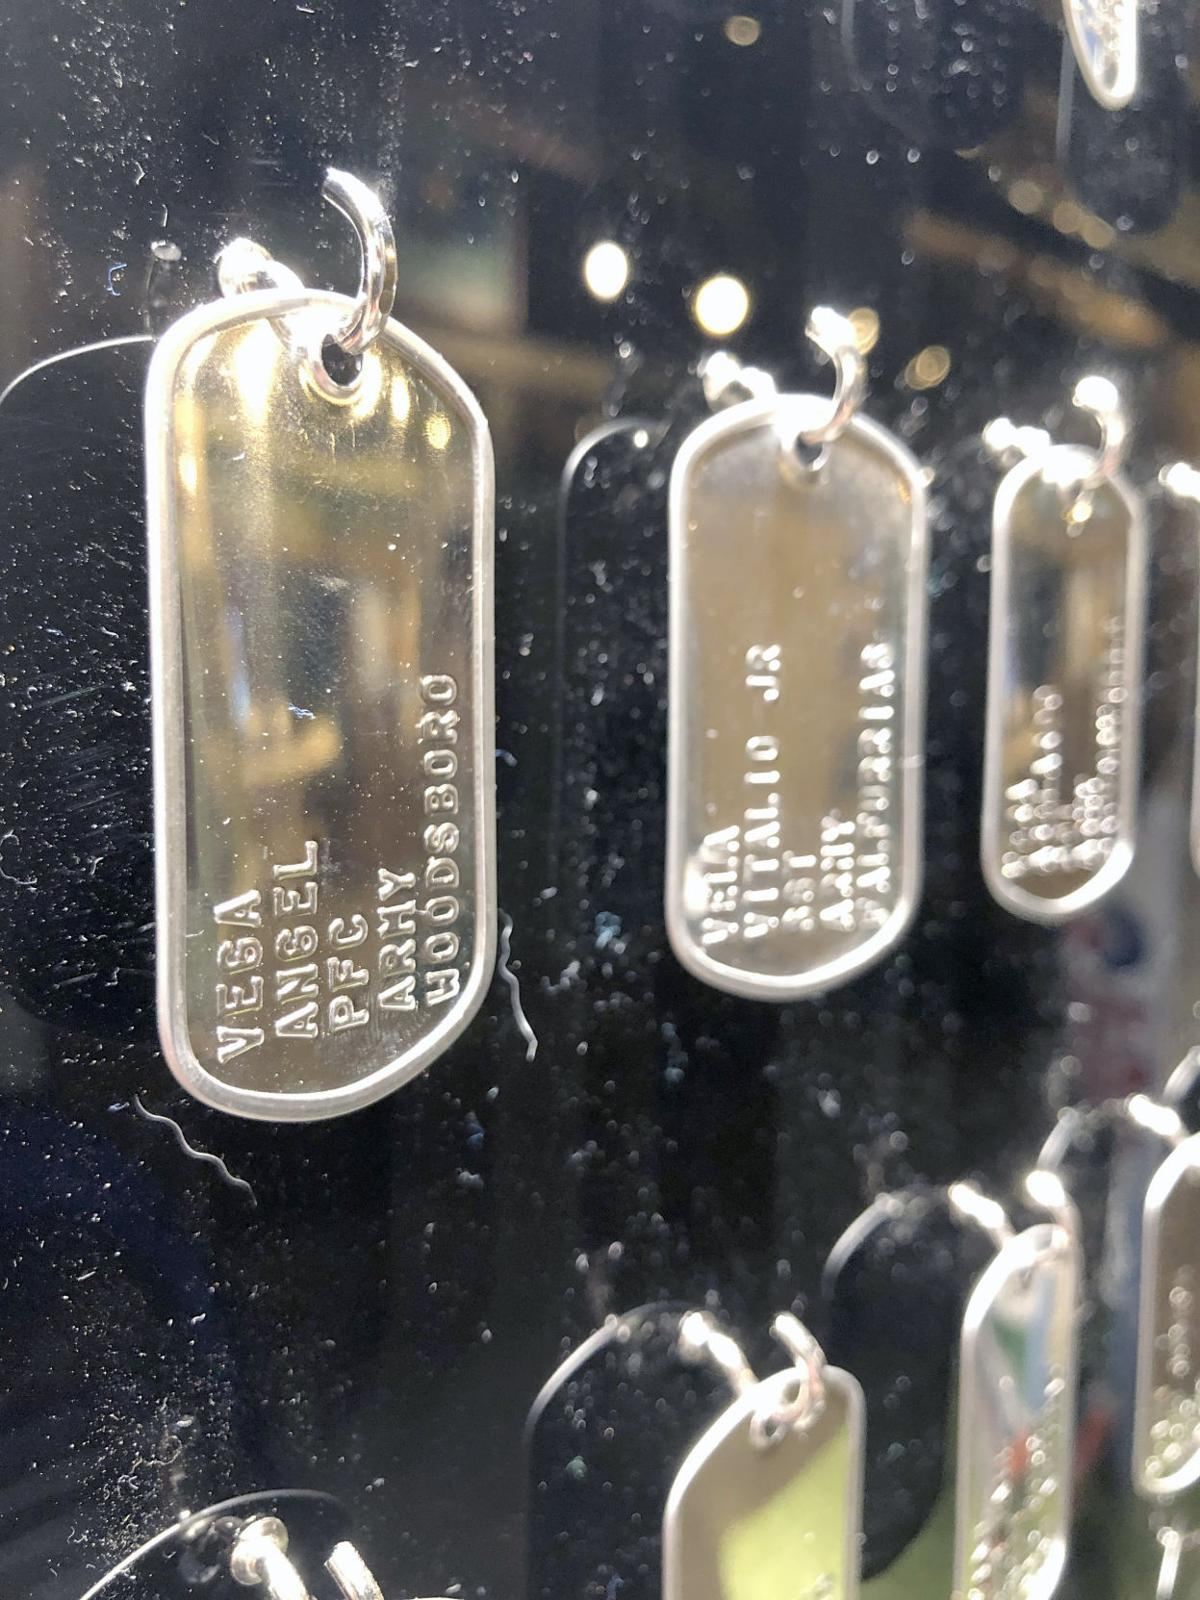 Veterans names on tags